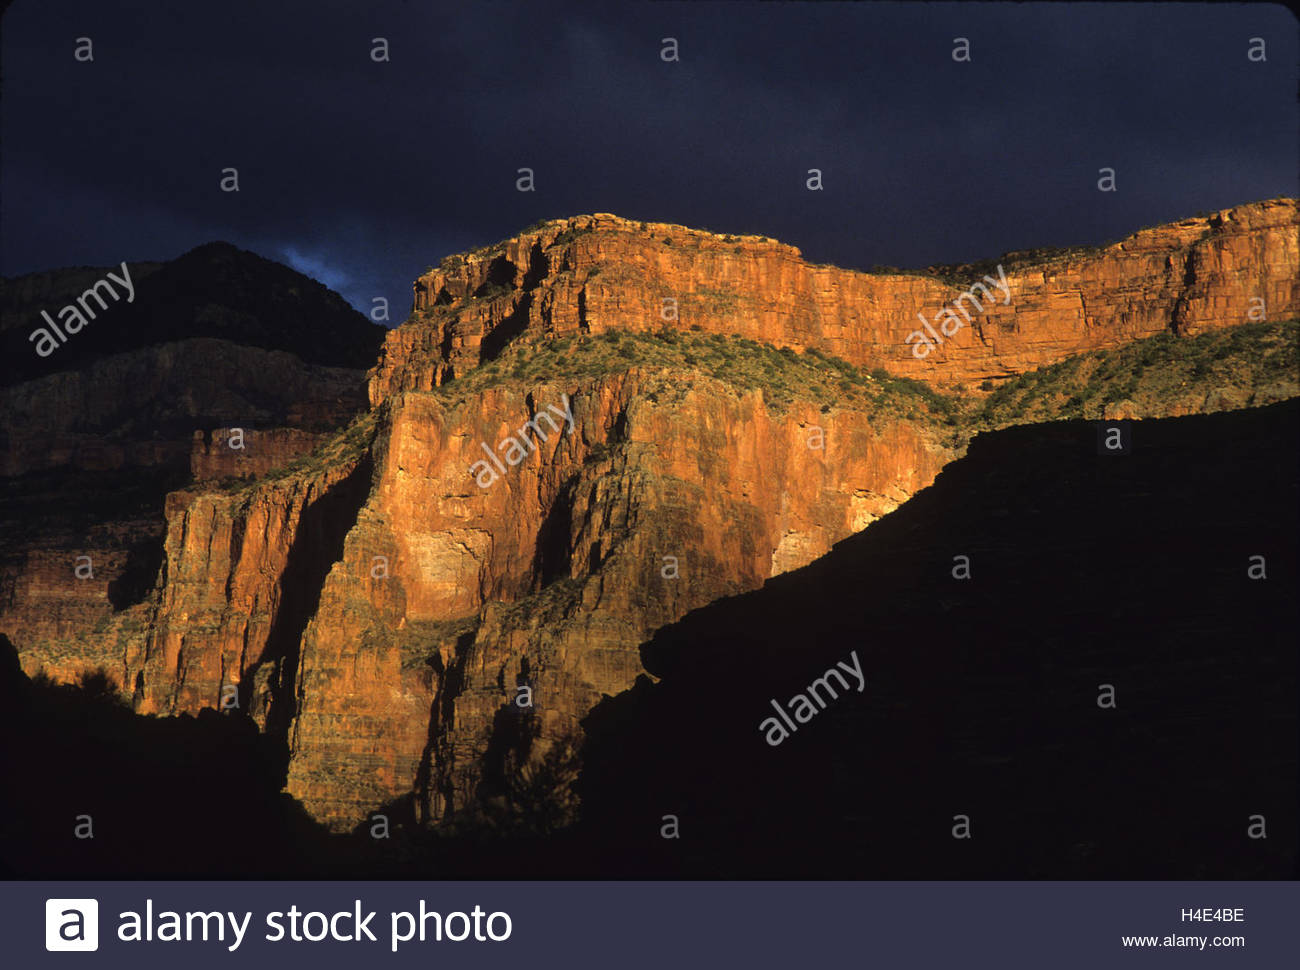 Late light shines on a cliff after a storm in Marble Canyon. - Stock Image